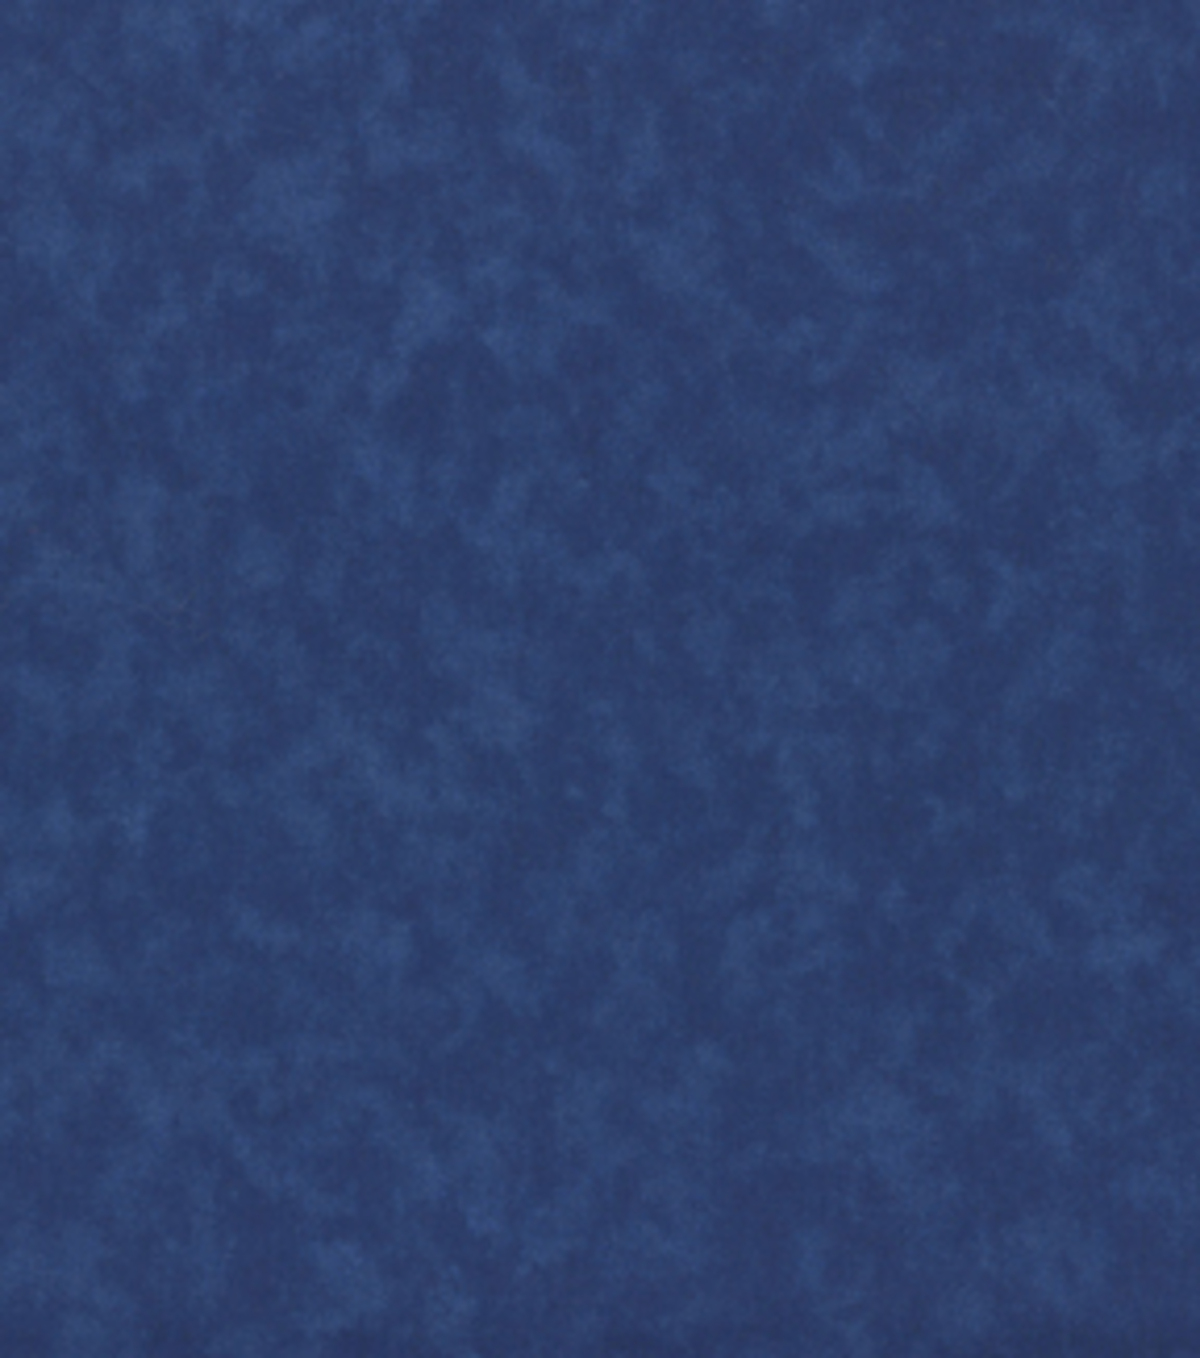 Keepsake Calico Cotton Fabric -Navy Tonal